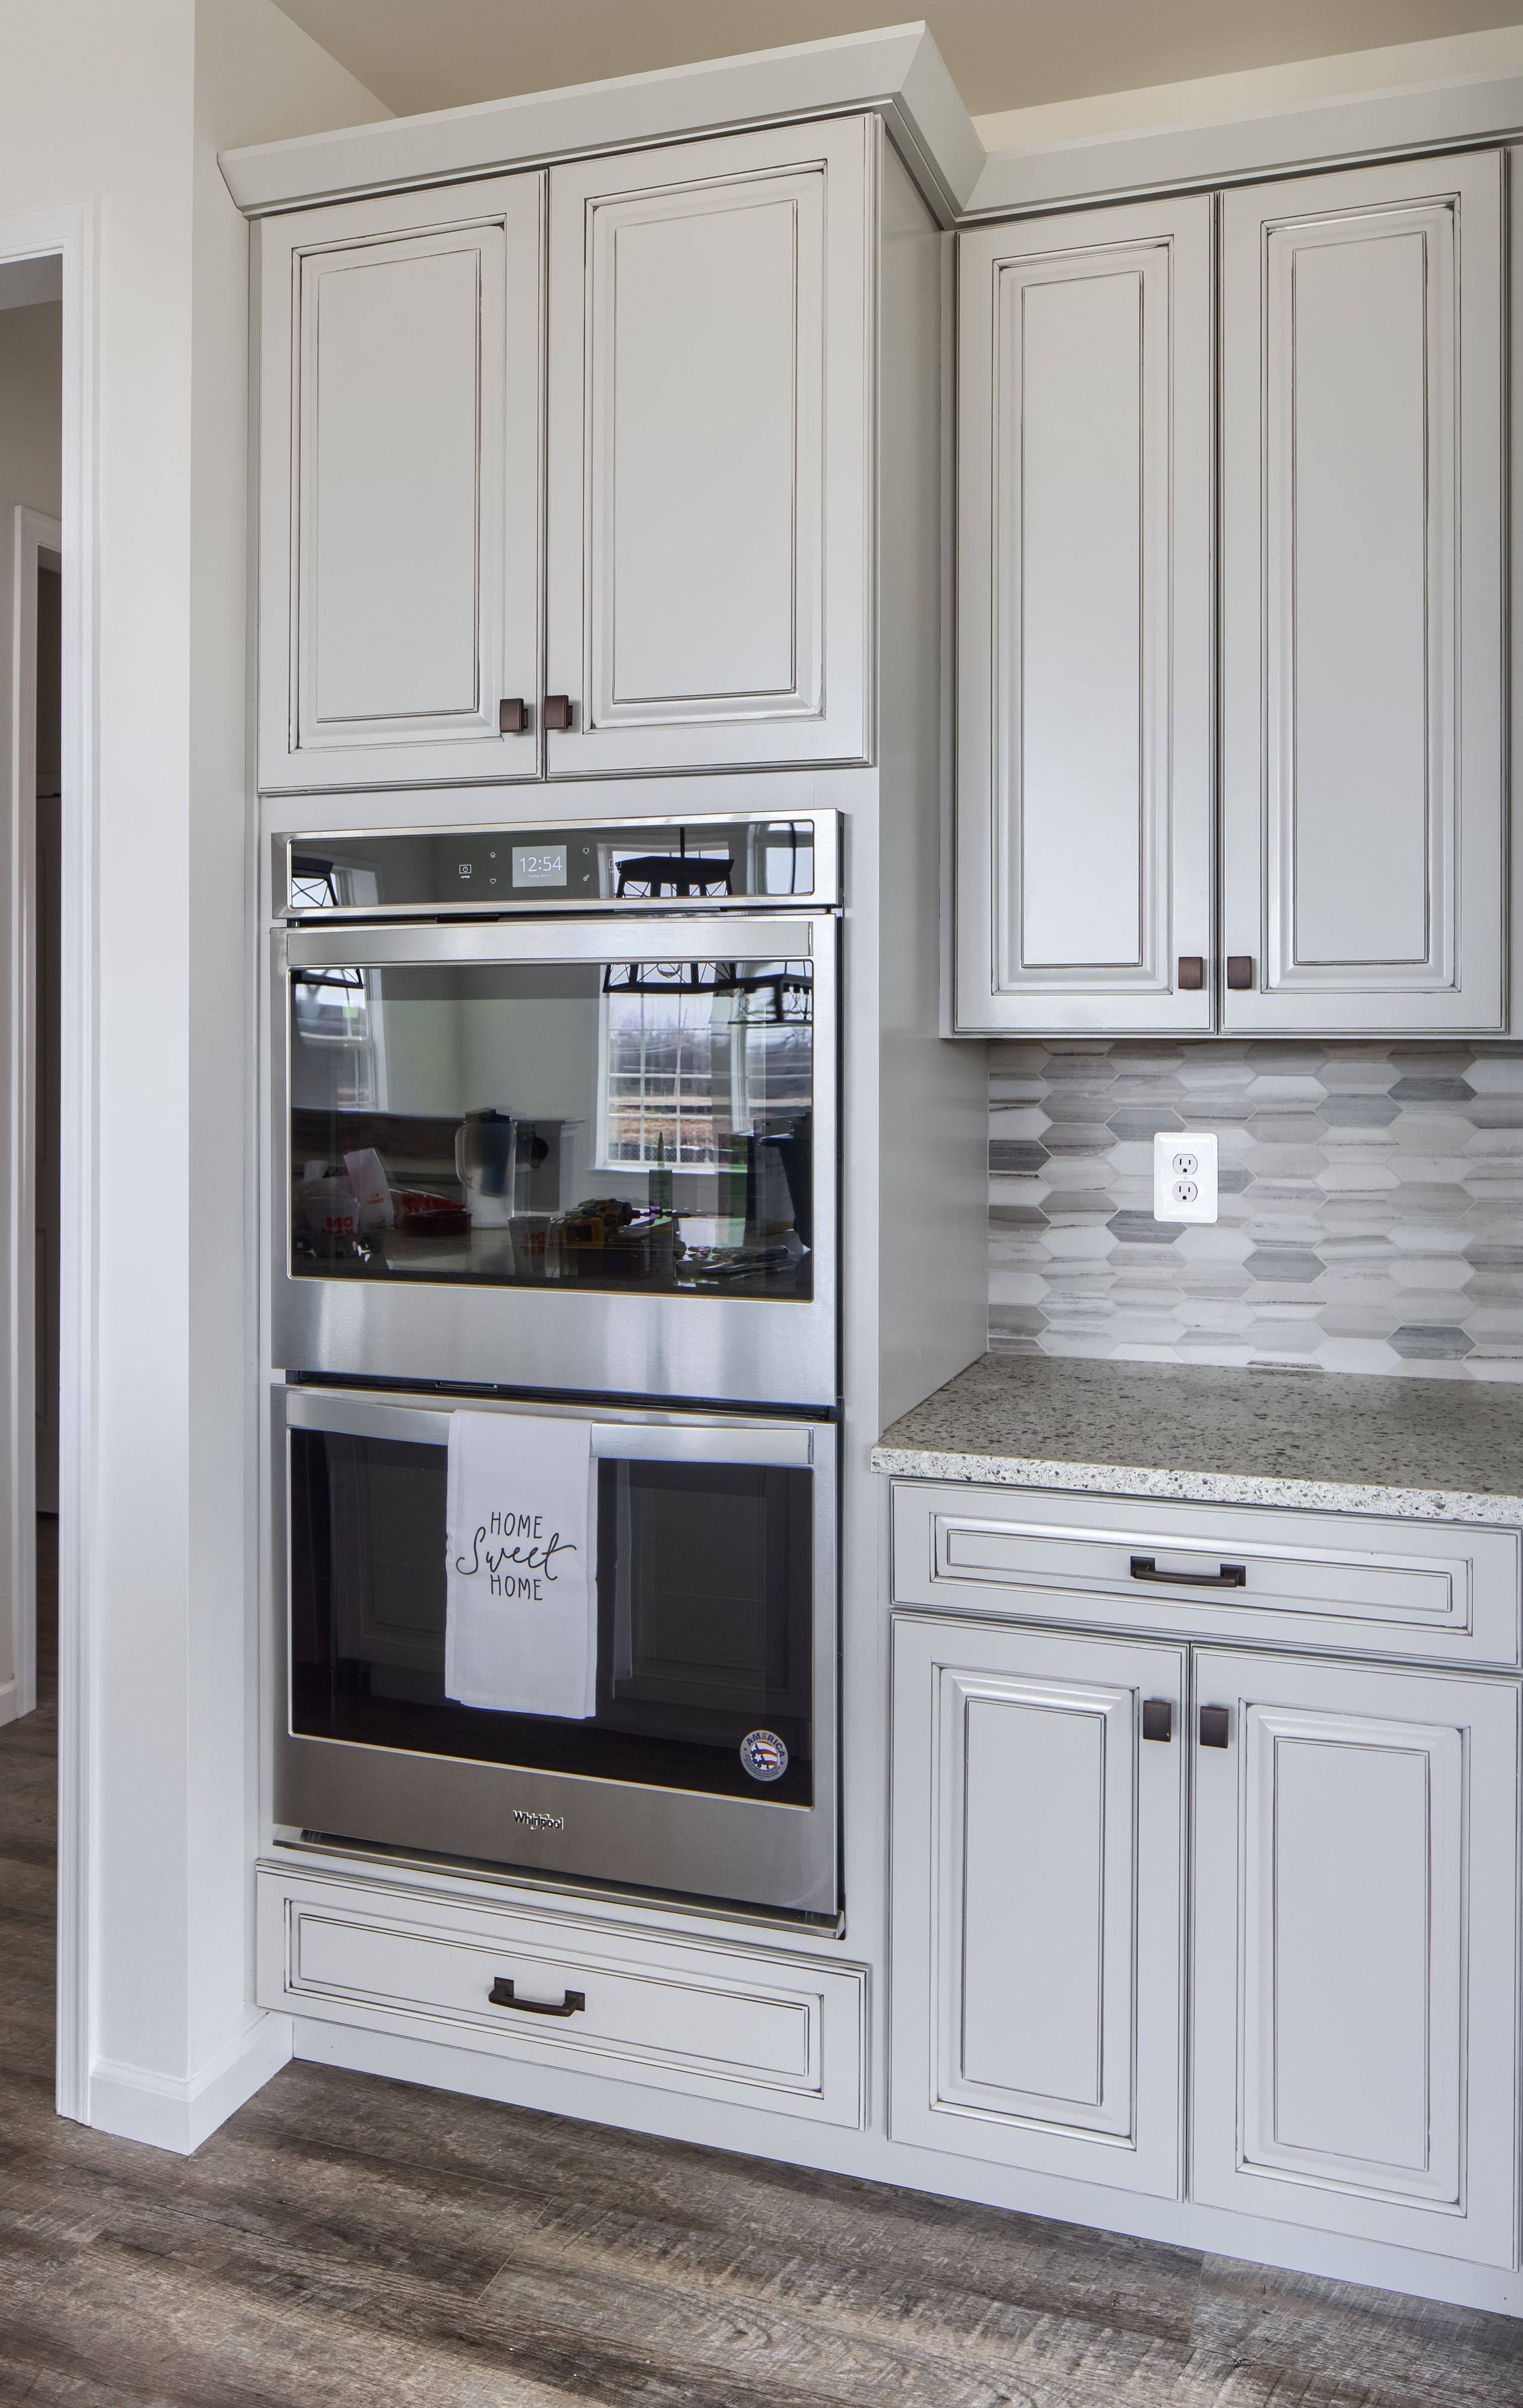 Kitchen featured in the Ethan English Cottage By Keystone Custom Homes in Harrisburg, PA